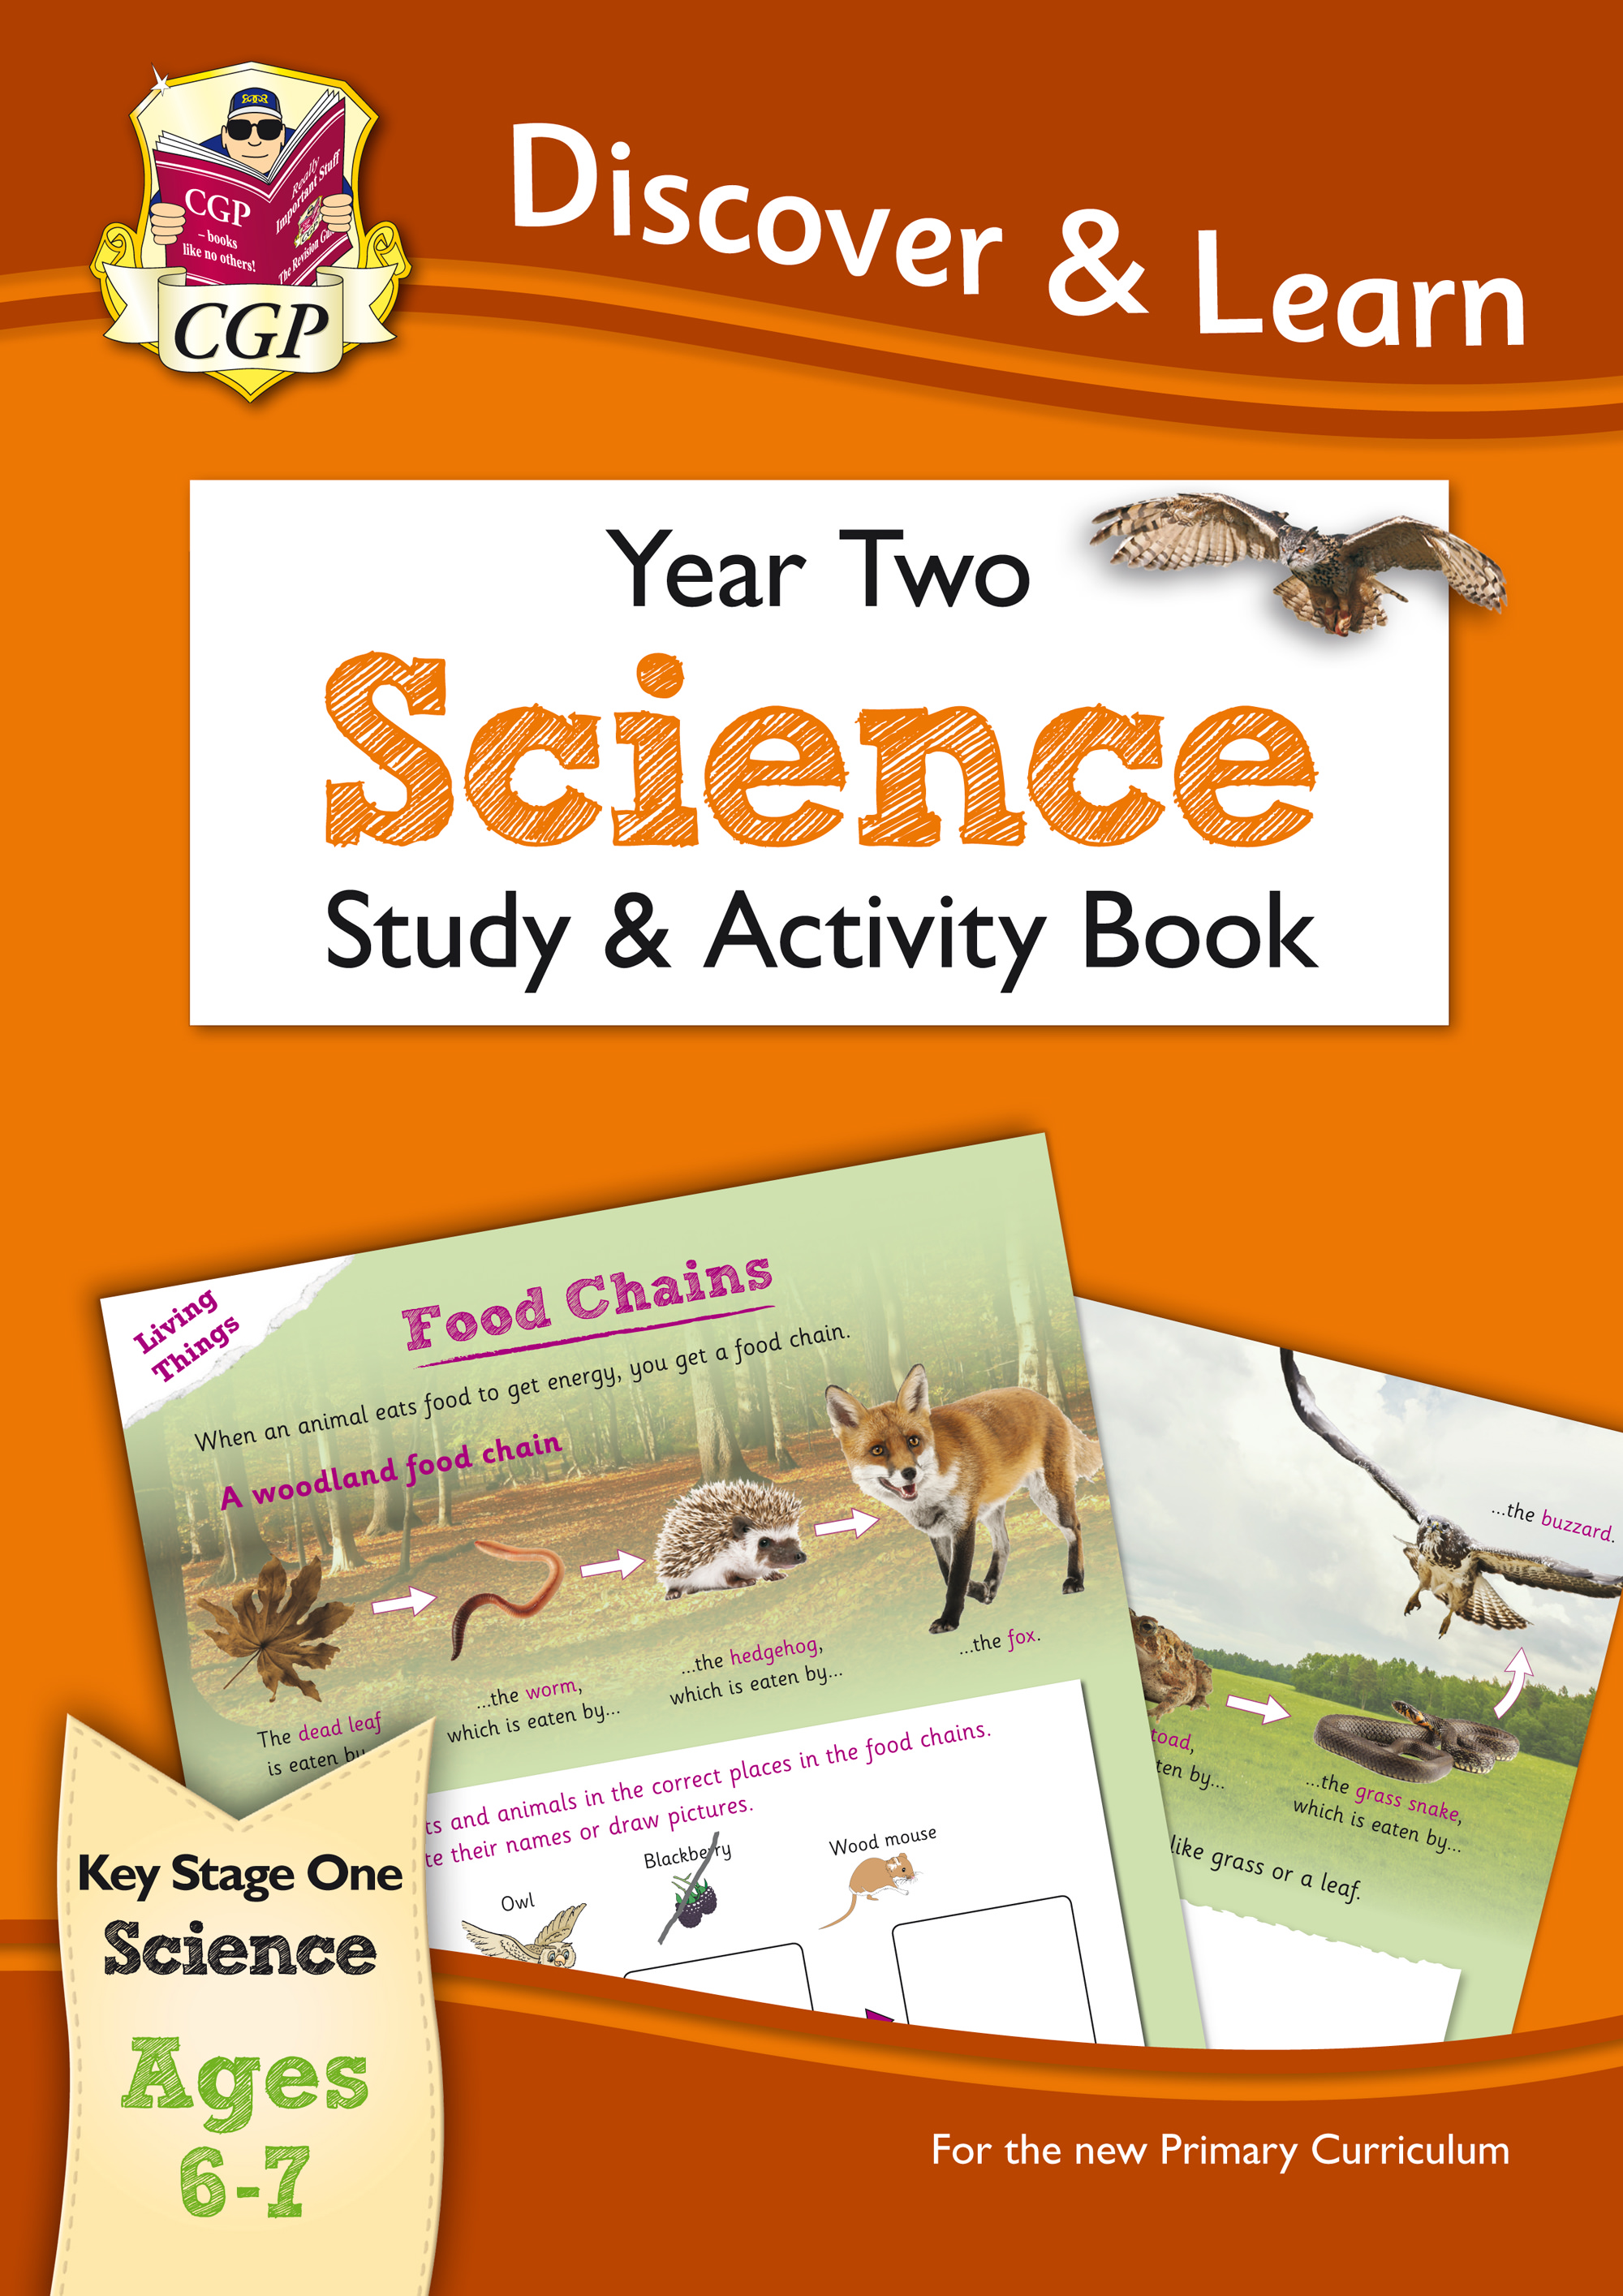 S2W11 - KS1 Discover & Learn: Science - Study & Activity Book, Year 2